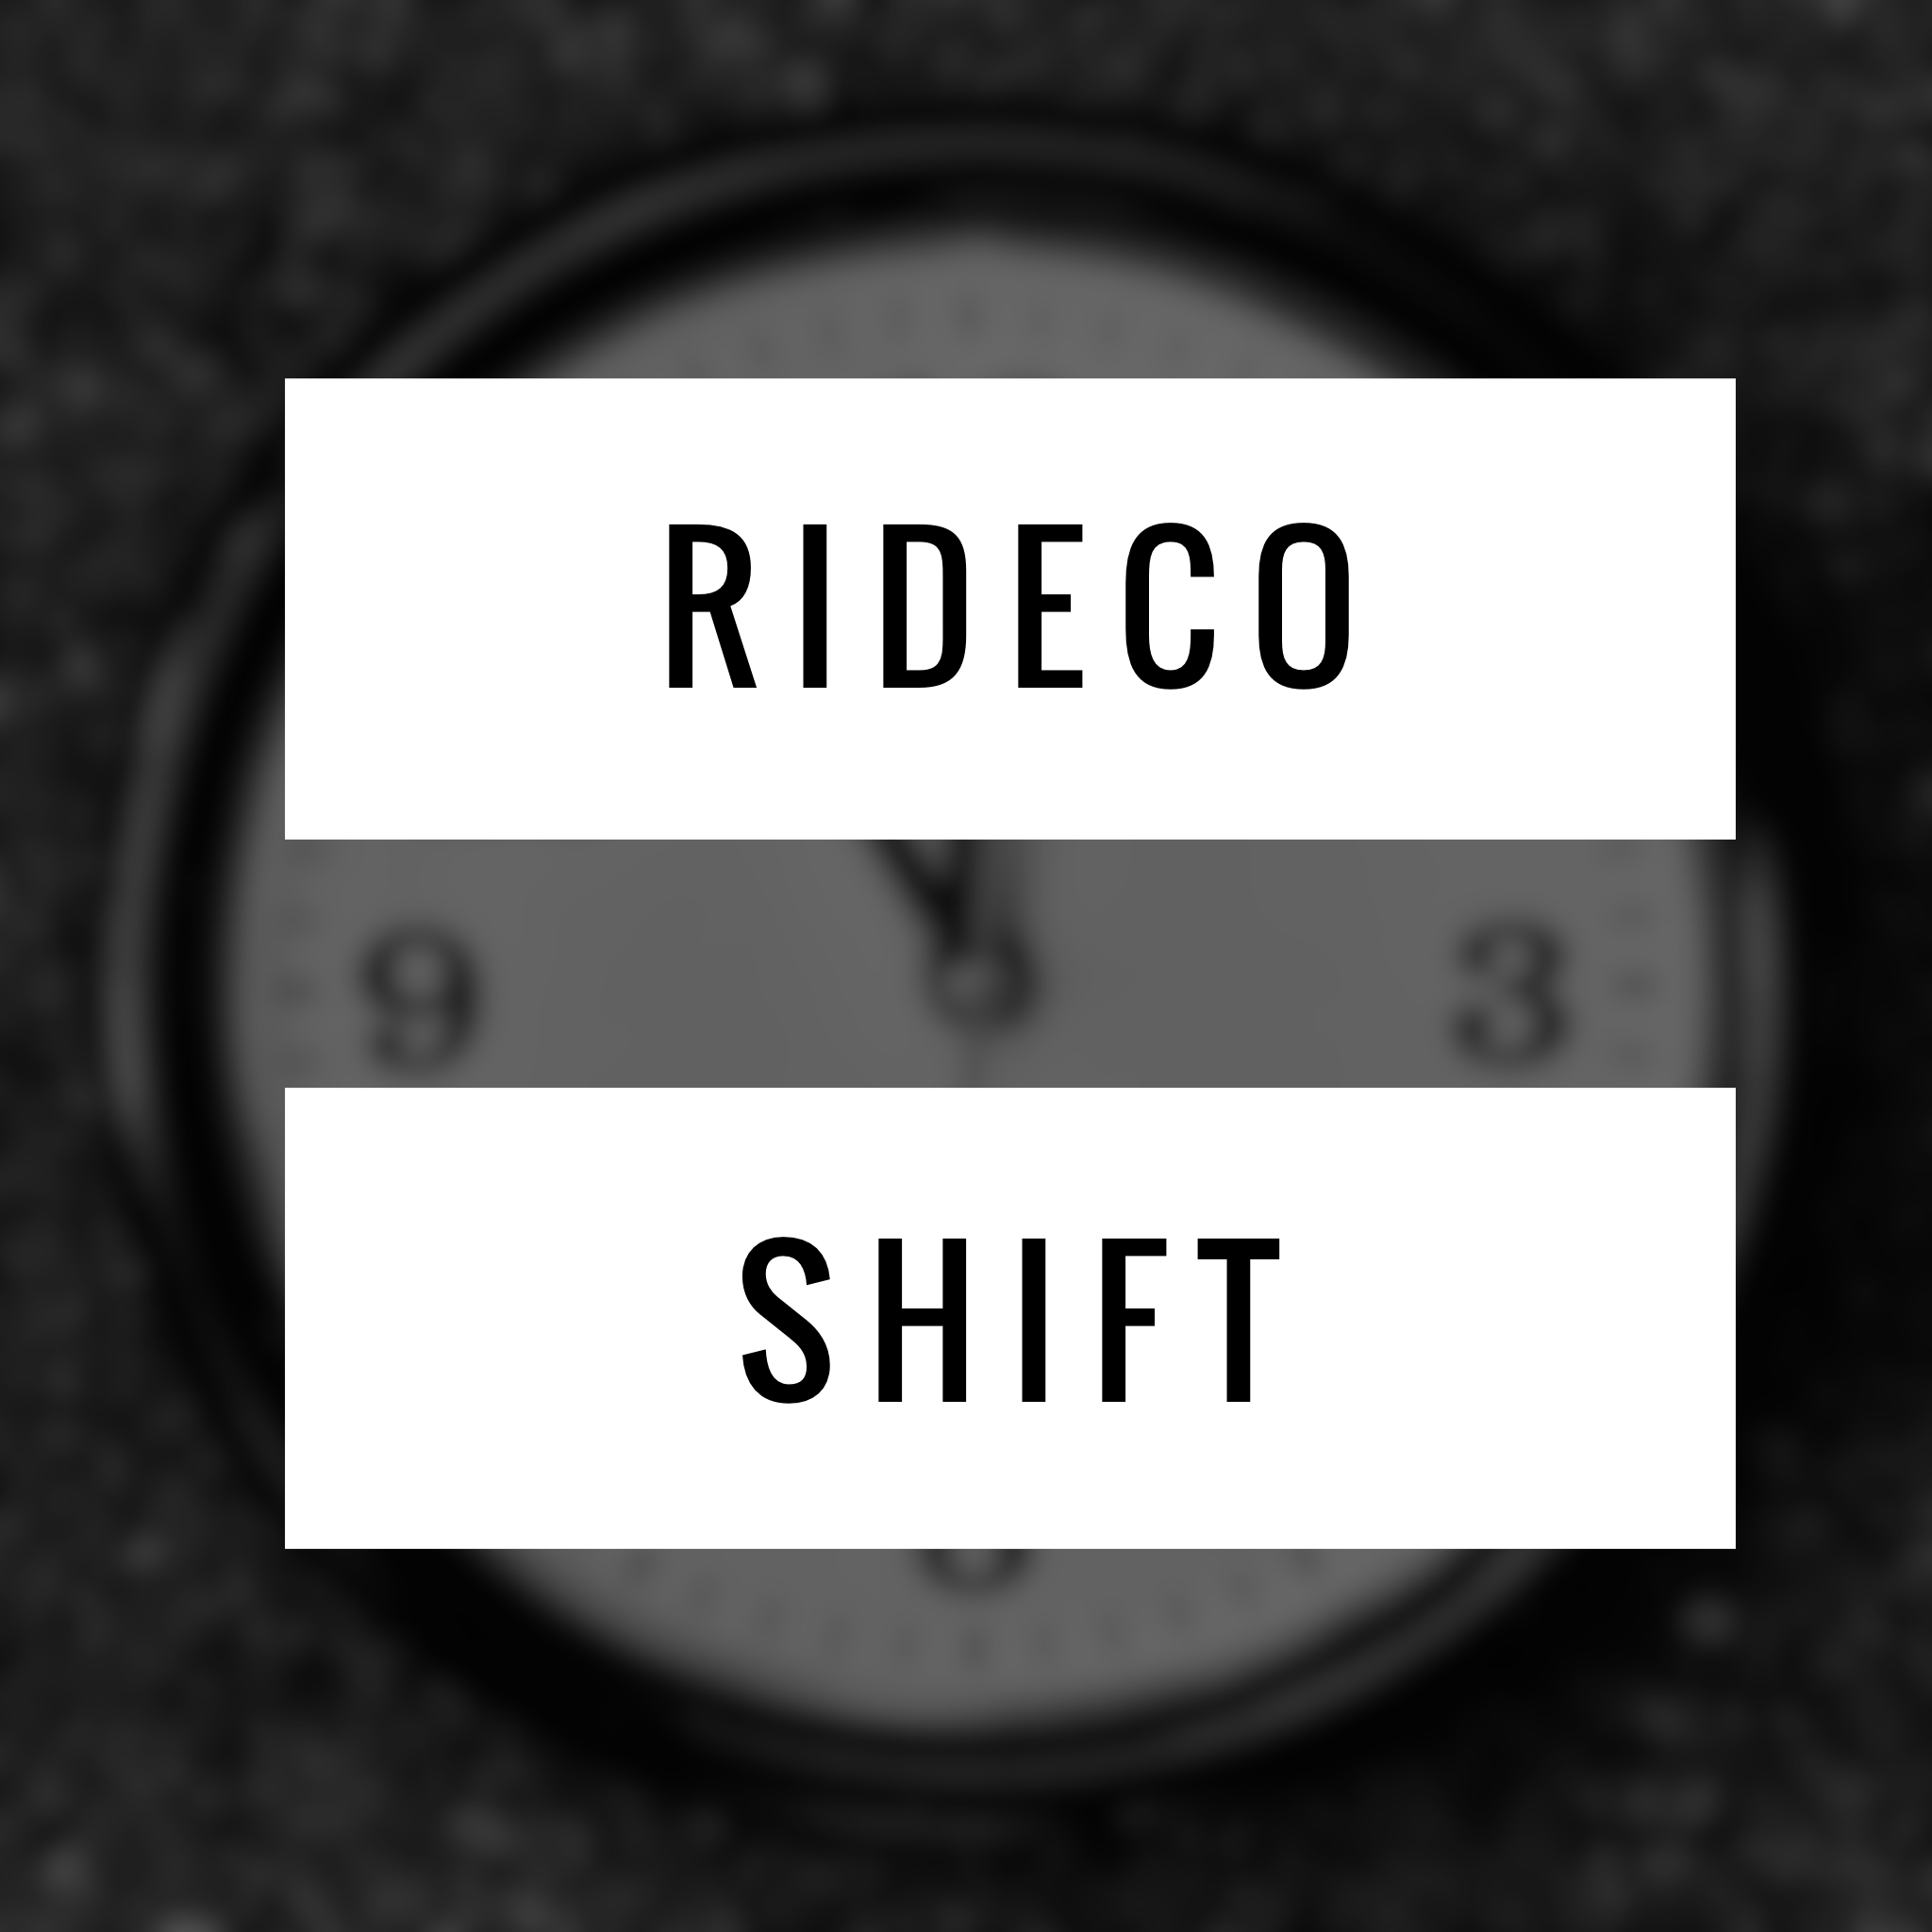 SIGN UP HERE for the RideCo Shift program. On this program you are able to pick up guaranteed minimum shifts, when available.